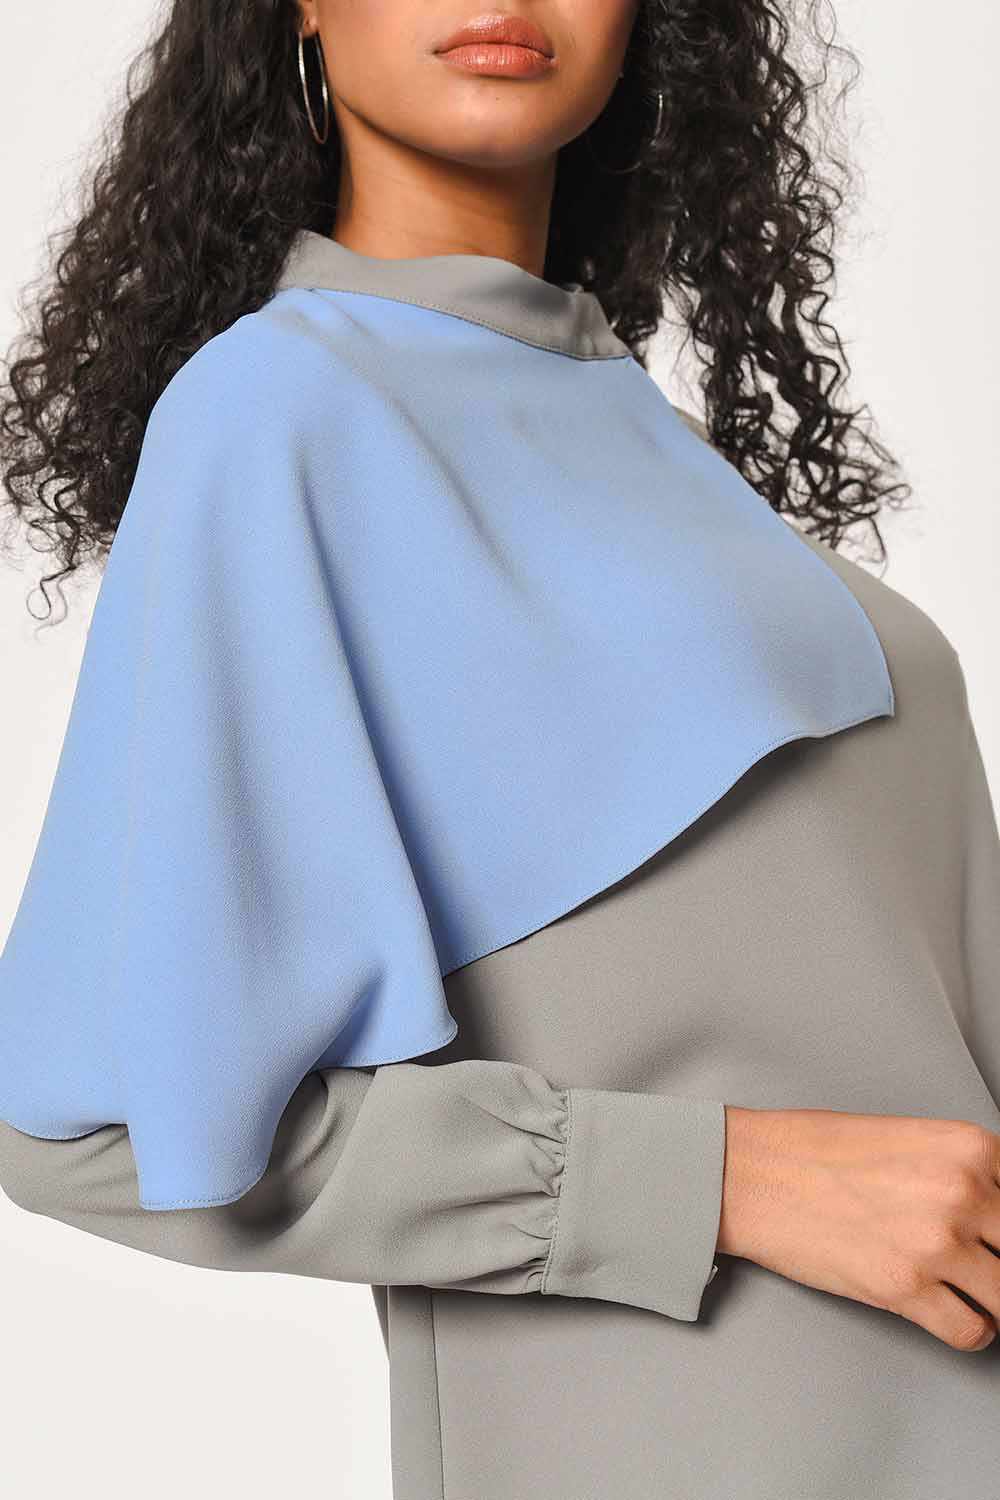 MIZALLE Two Colored Garnish Design Blouse (Grey/Blue) (1)